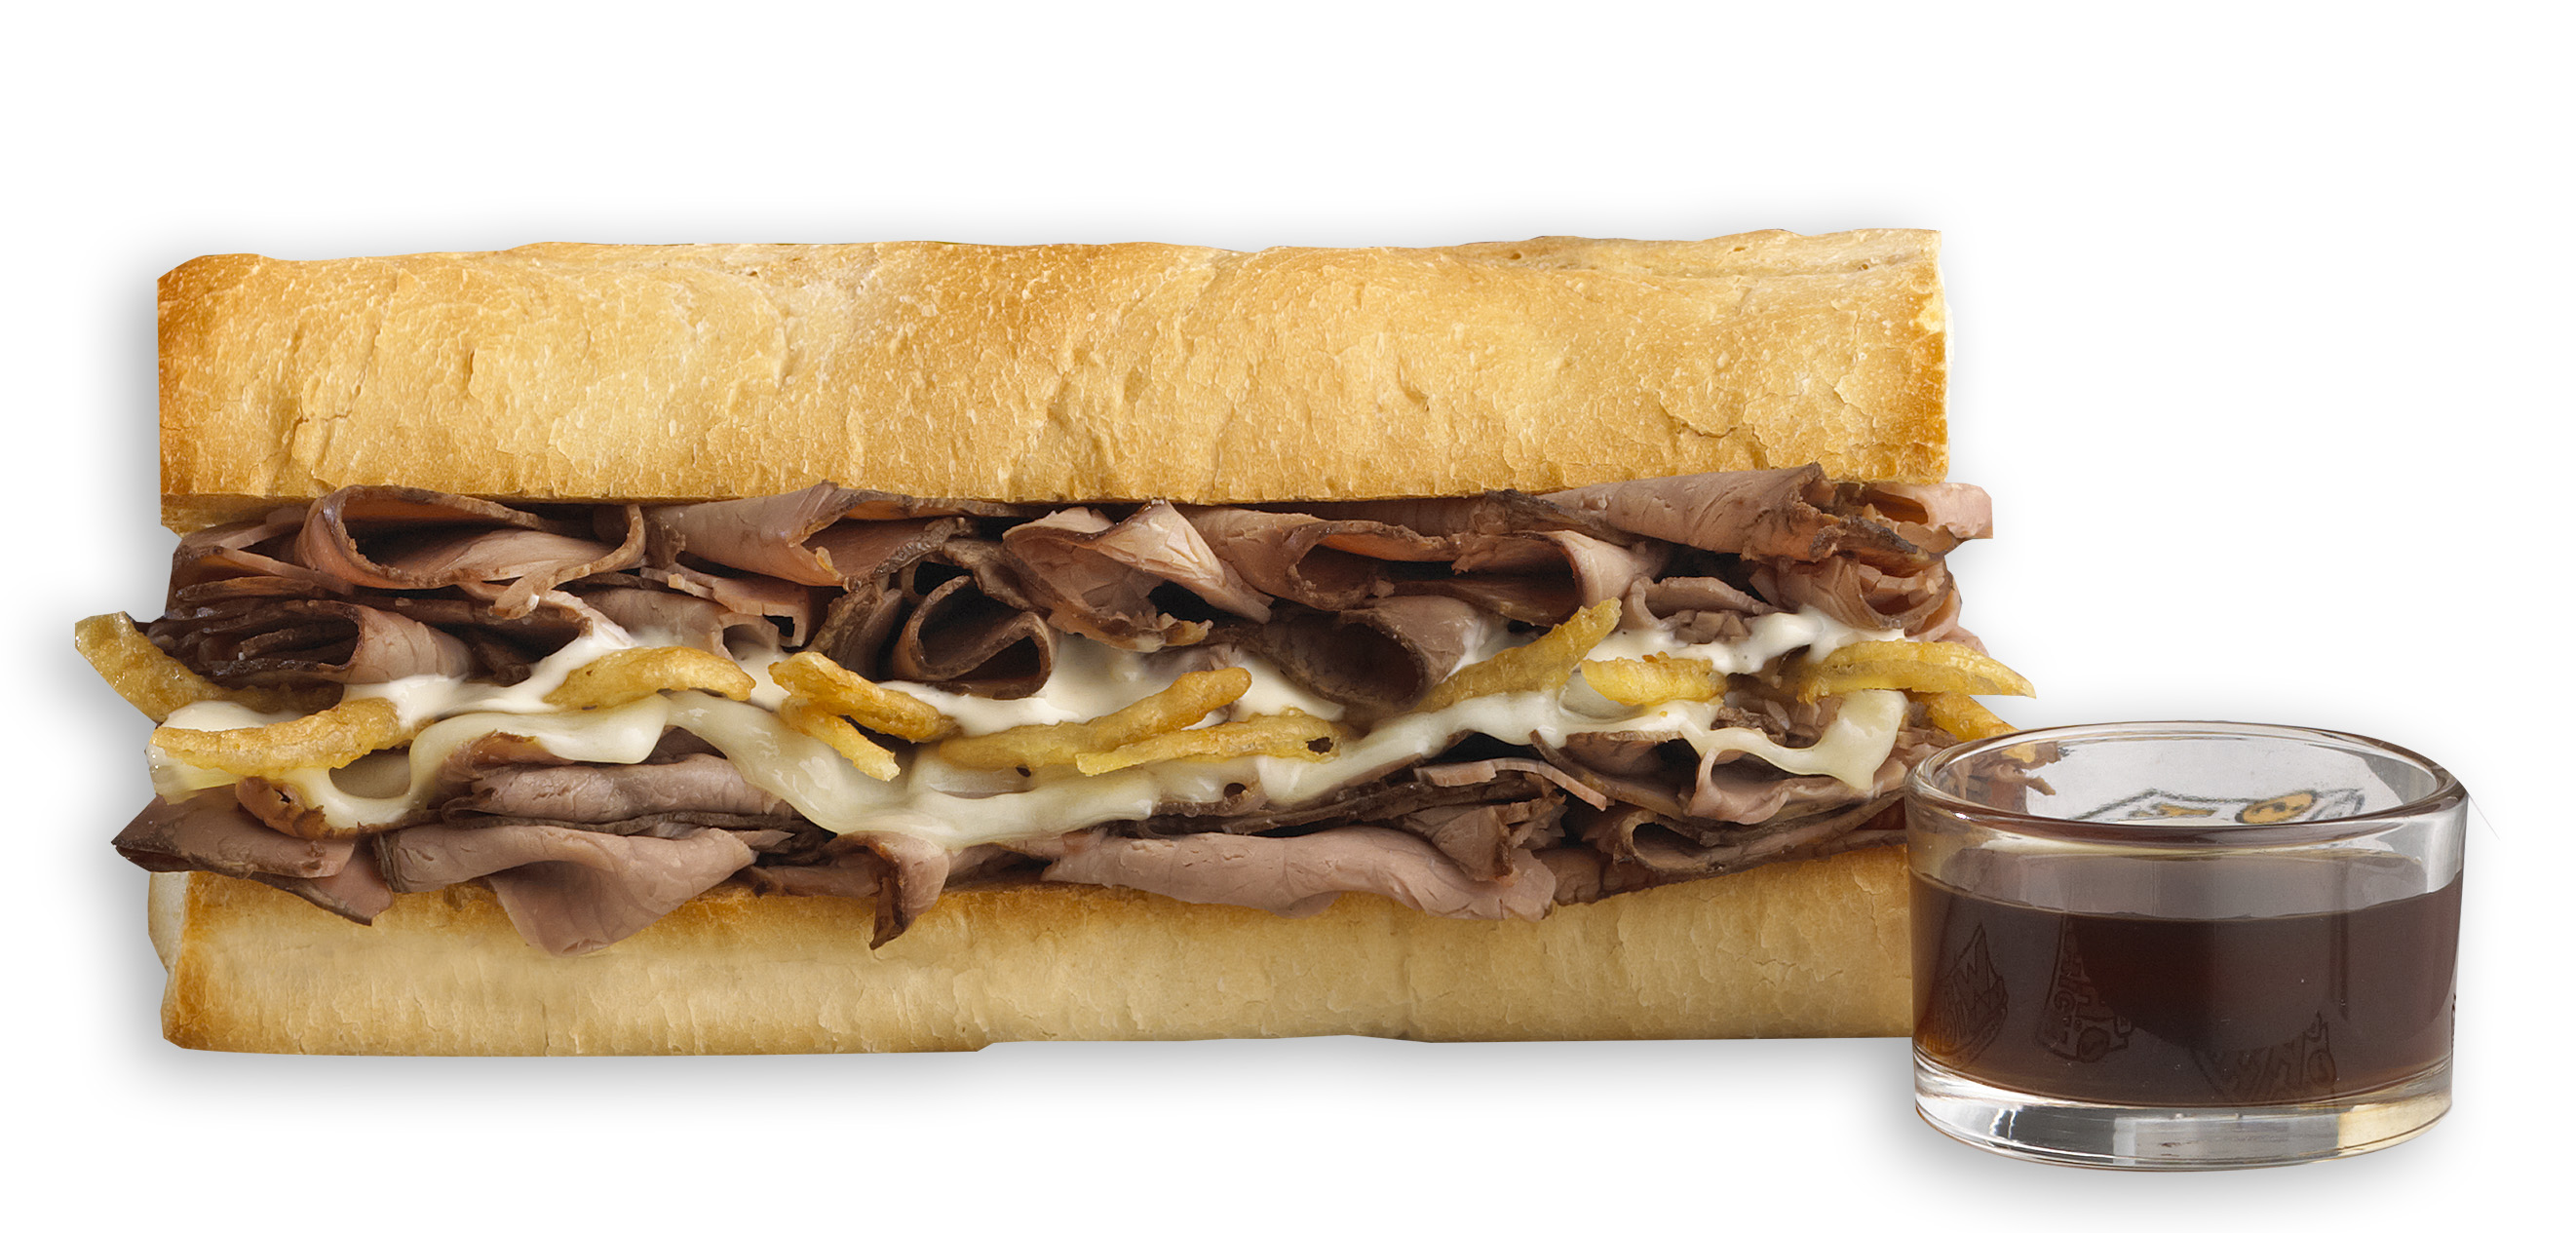 Which Wich French Dip Sandwich